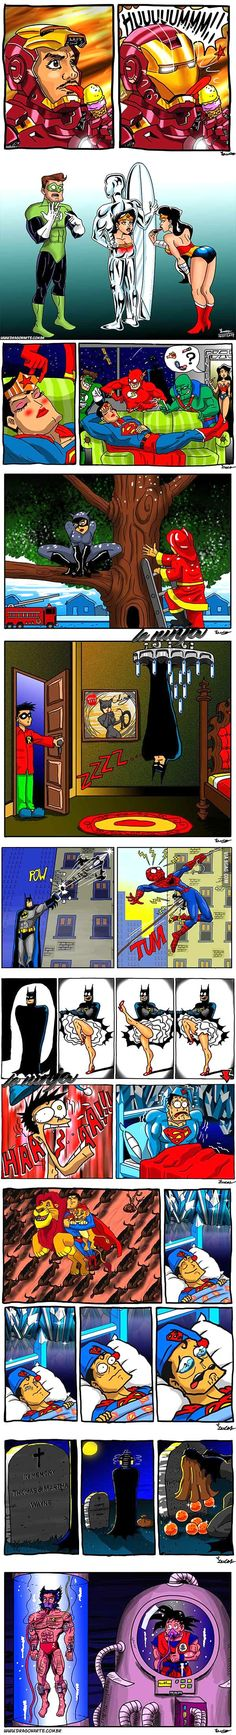 Super Heroes fun time